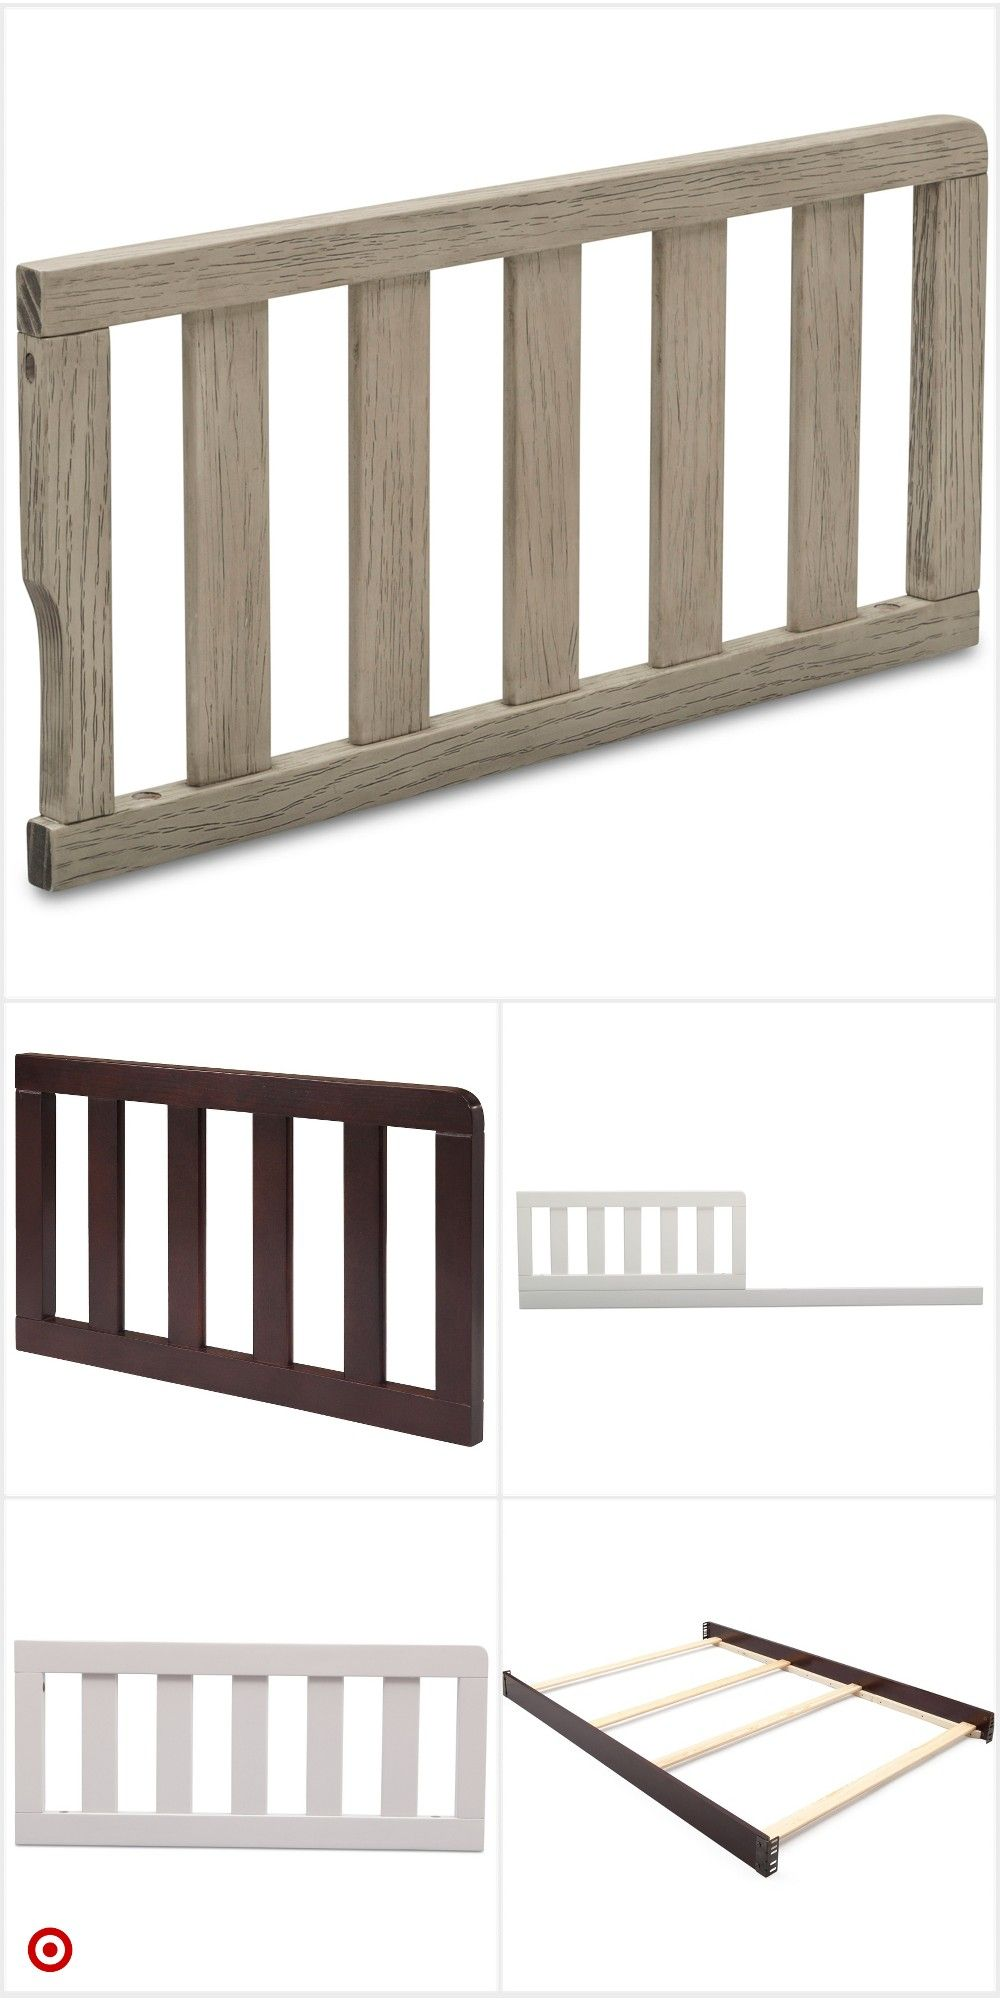 Shop Target for bed rails you will love at great low